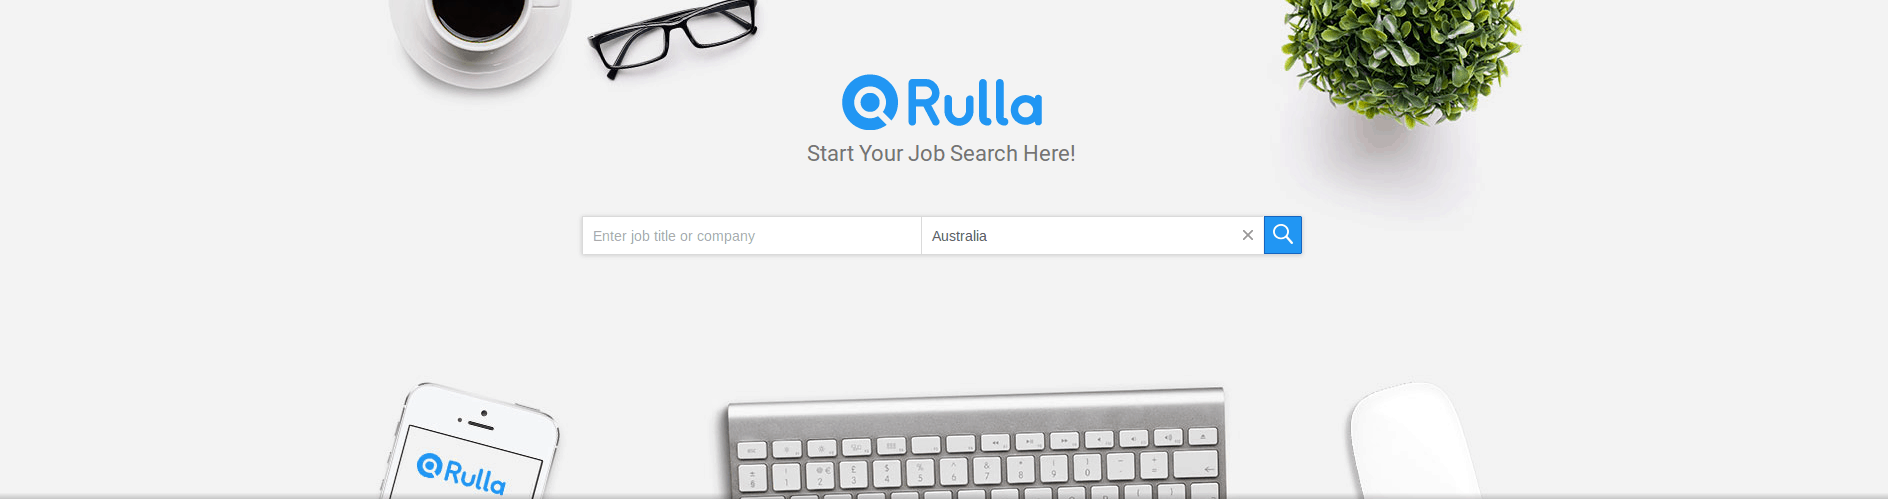 Rulla Job Search Site